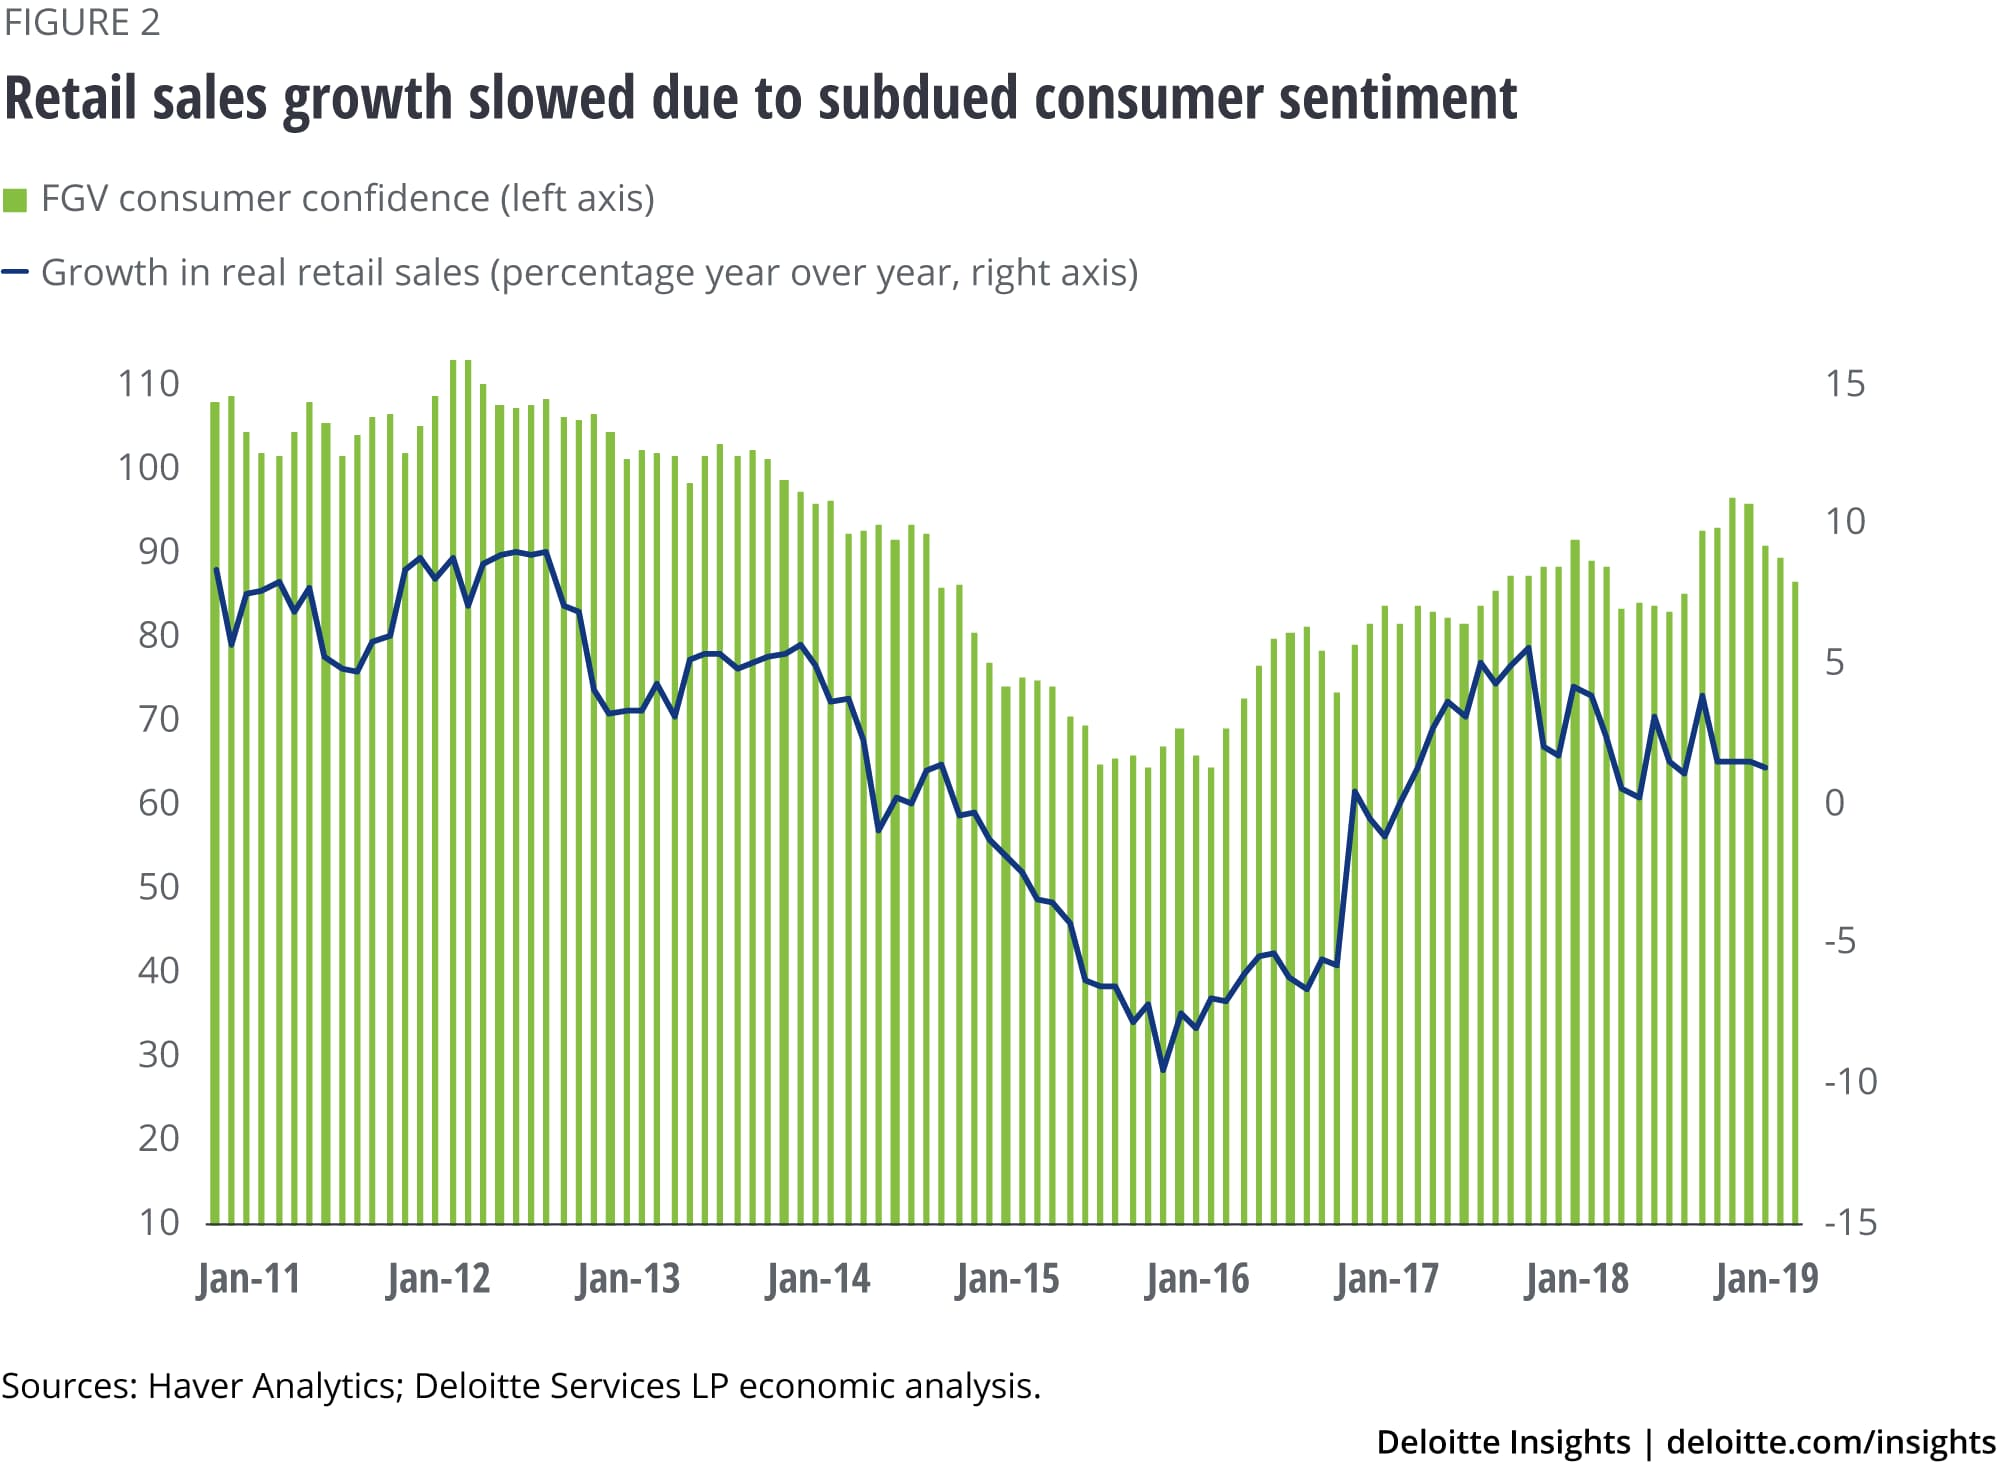 Retail sales growth has slowed due to subdued consumer sentiment